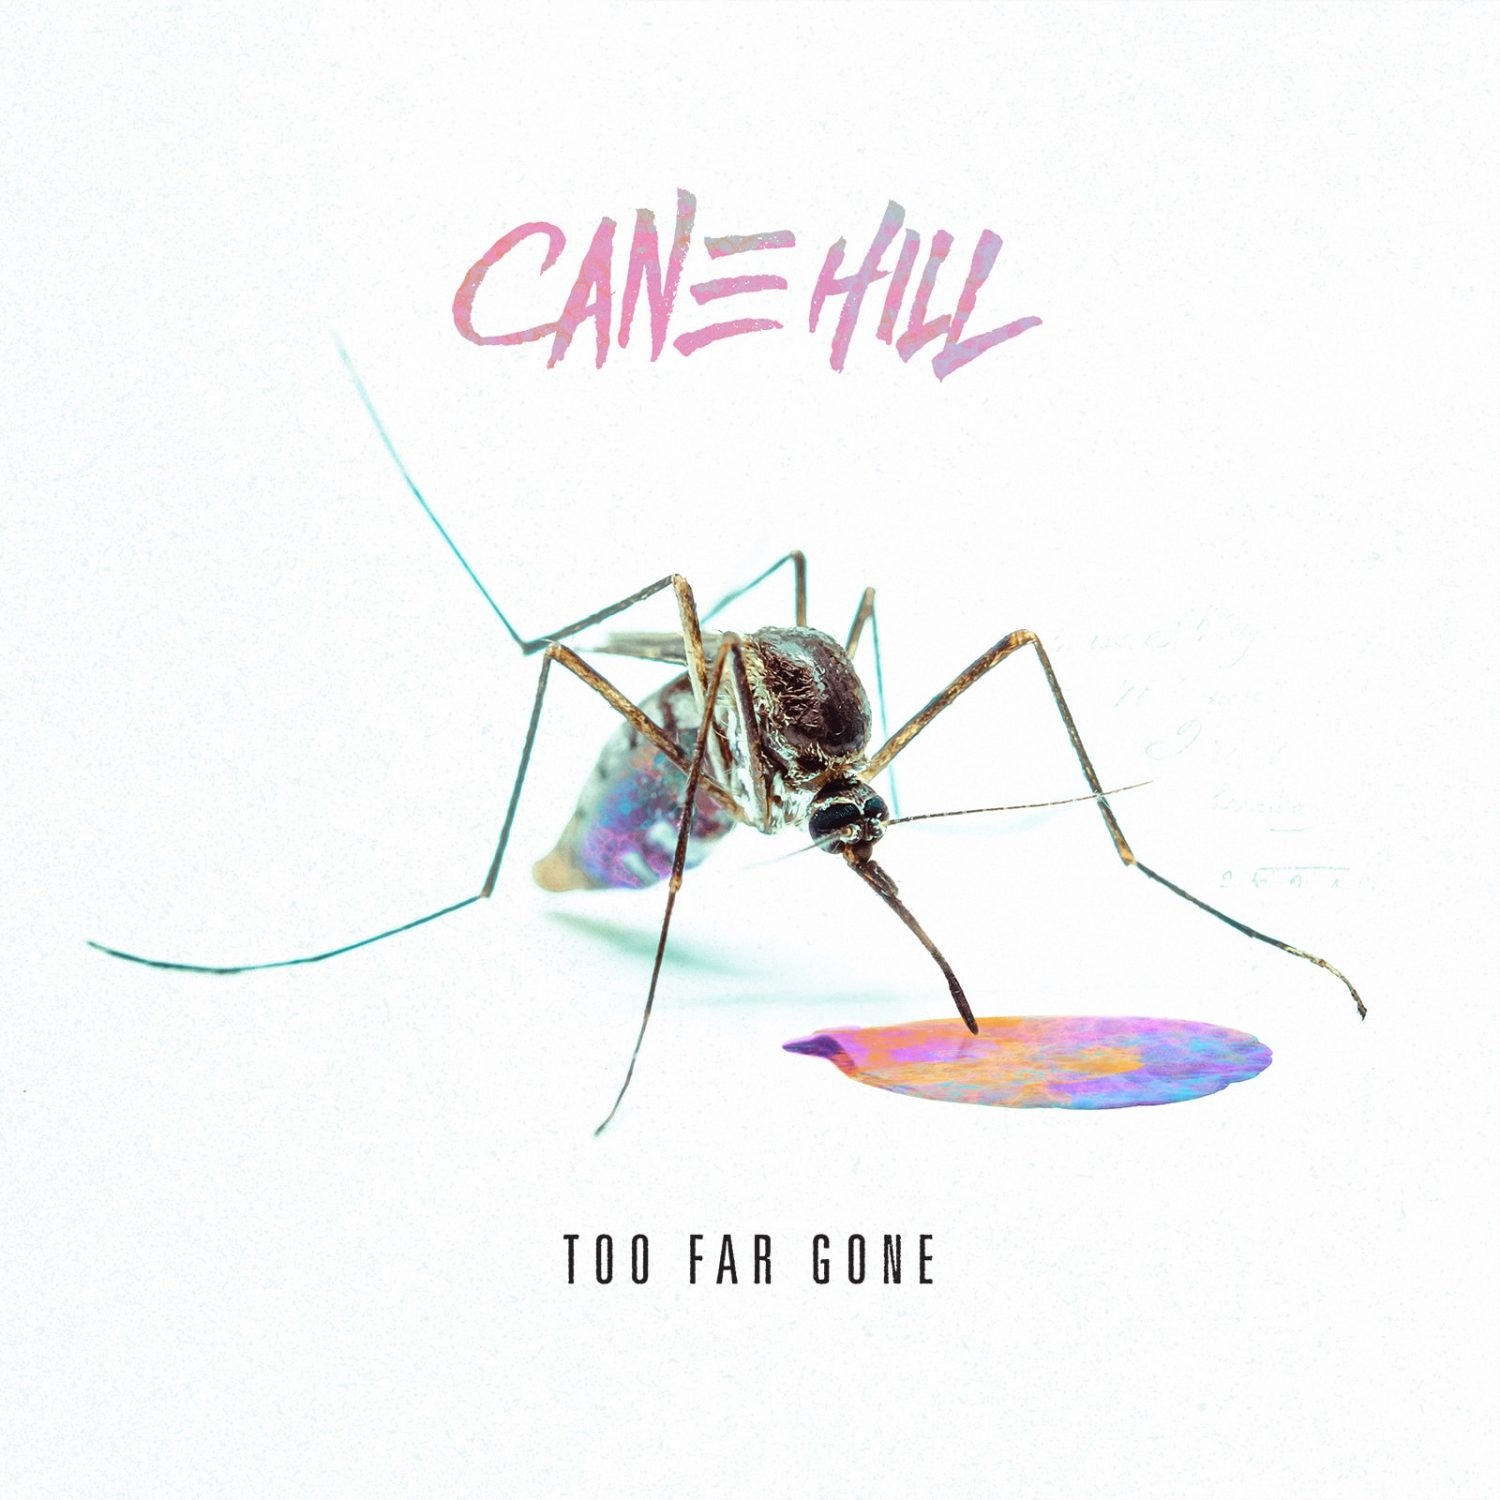 canehill singles Hear cane hill's gripping, groovy new metal epic new orleans metal outfit cane hill the group has teamed up with revolver to drop another searing single.